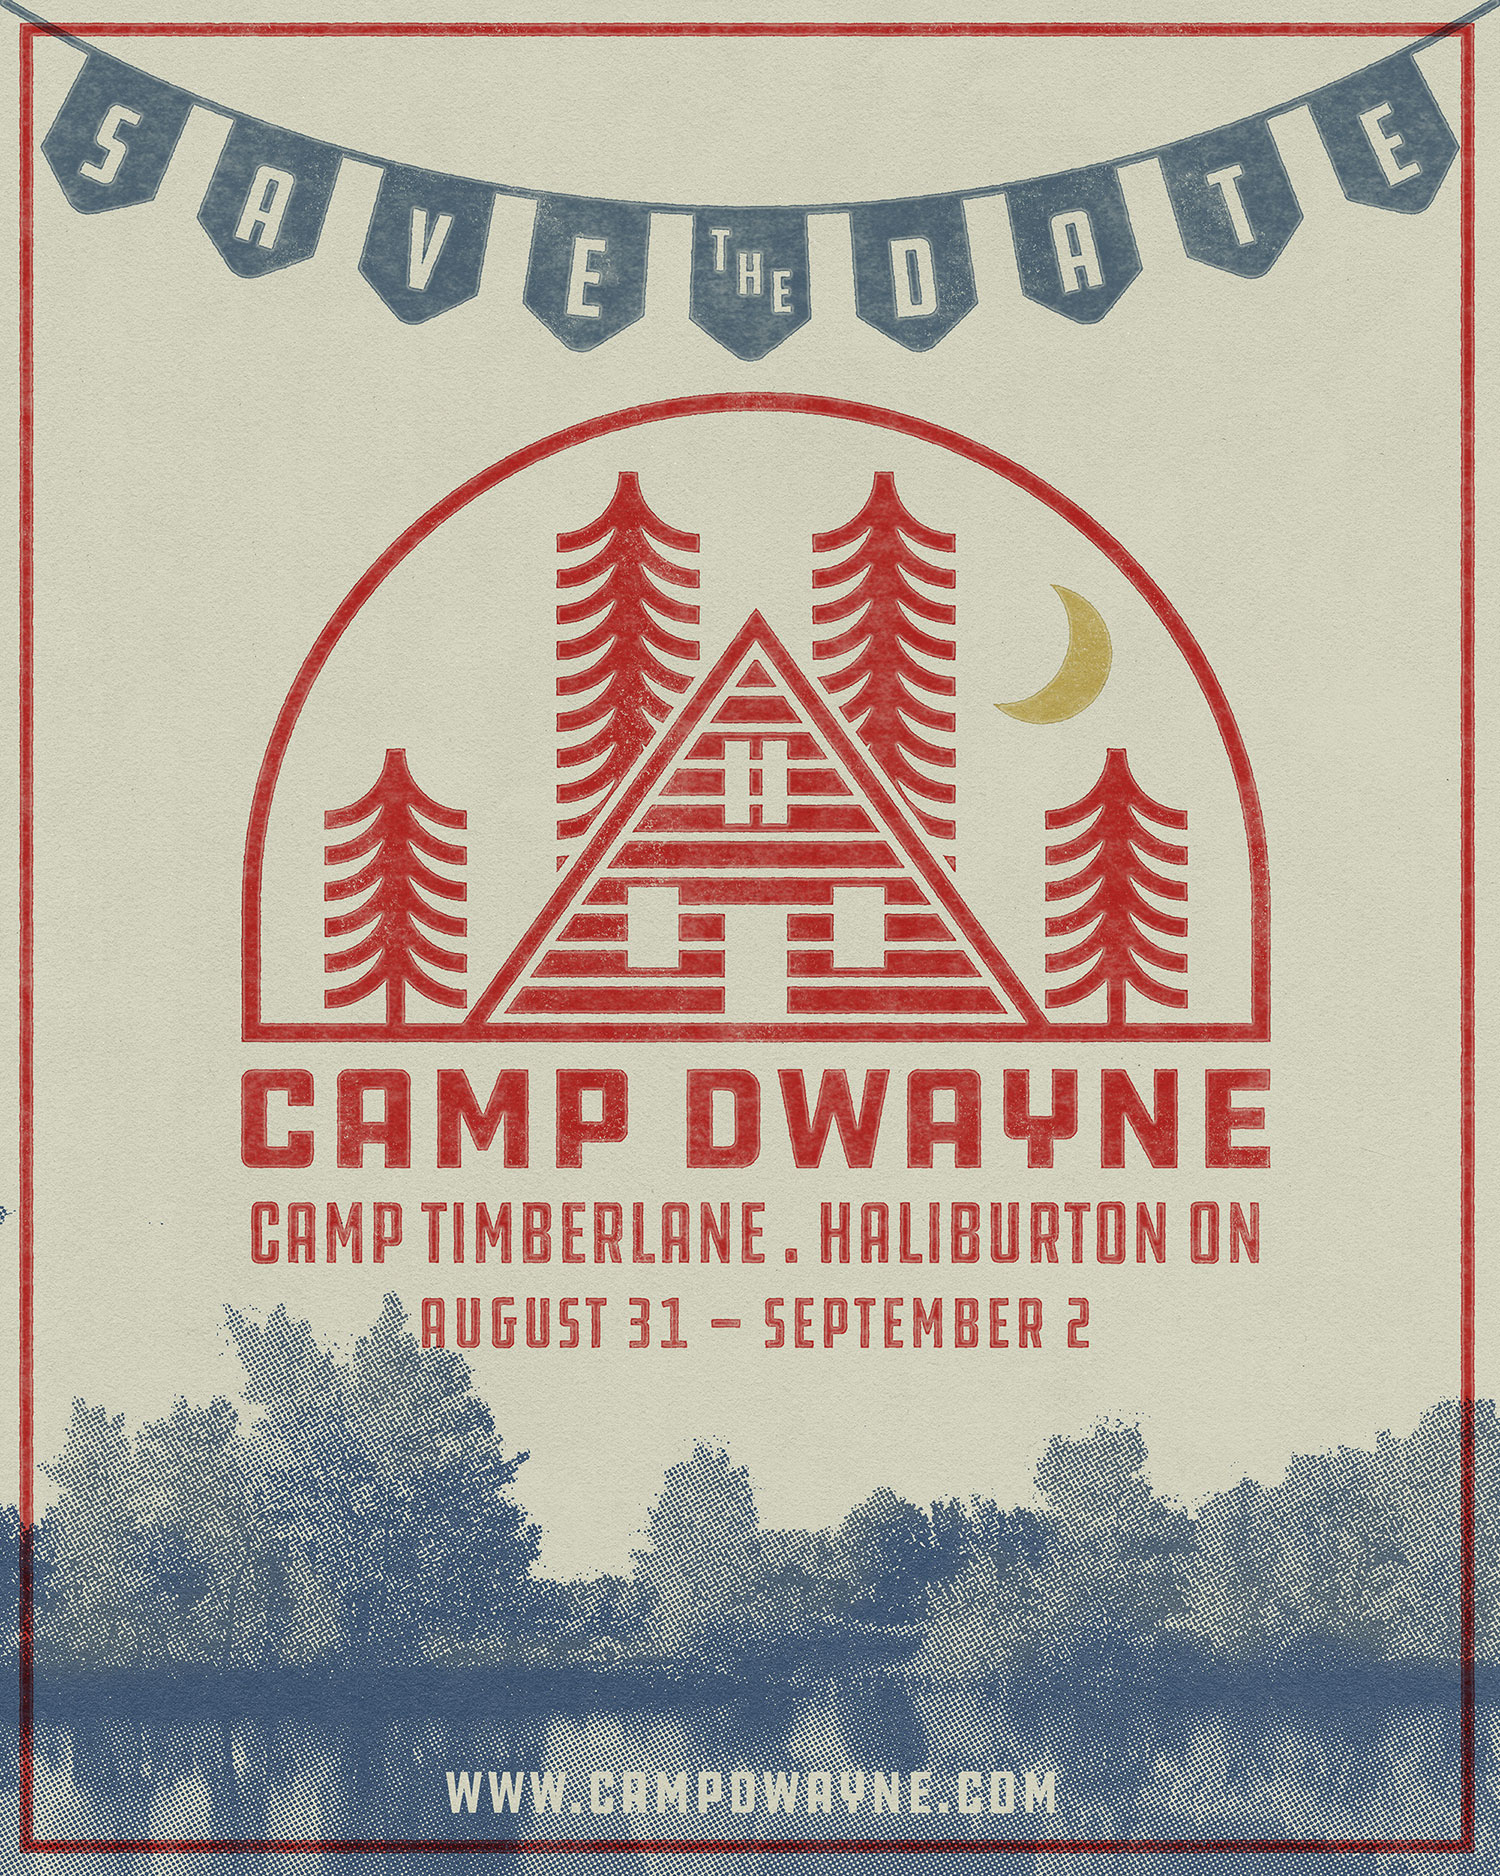 Camp Dwayne